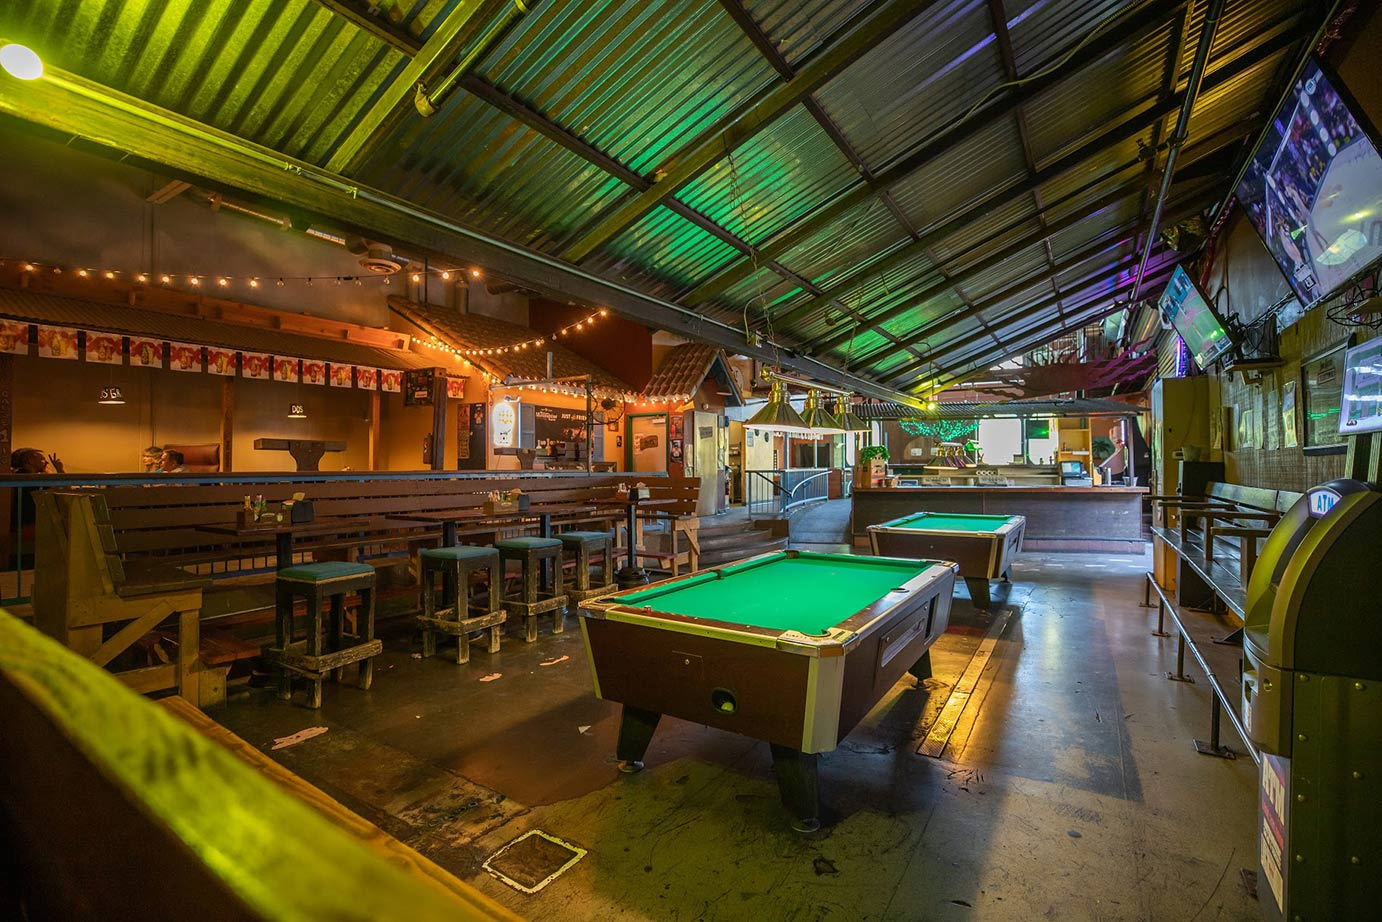 Bar interior with billiard table